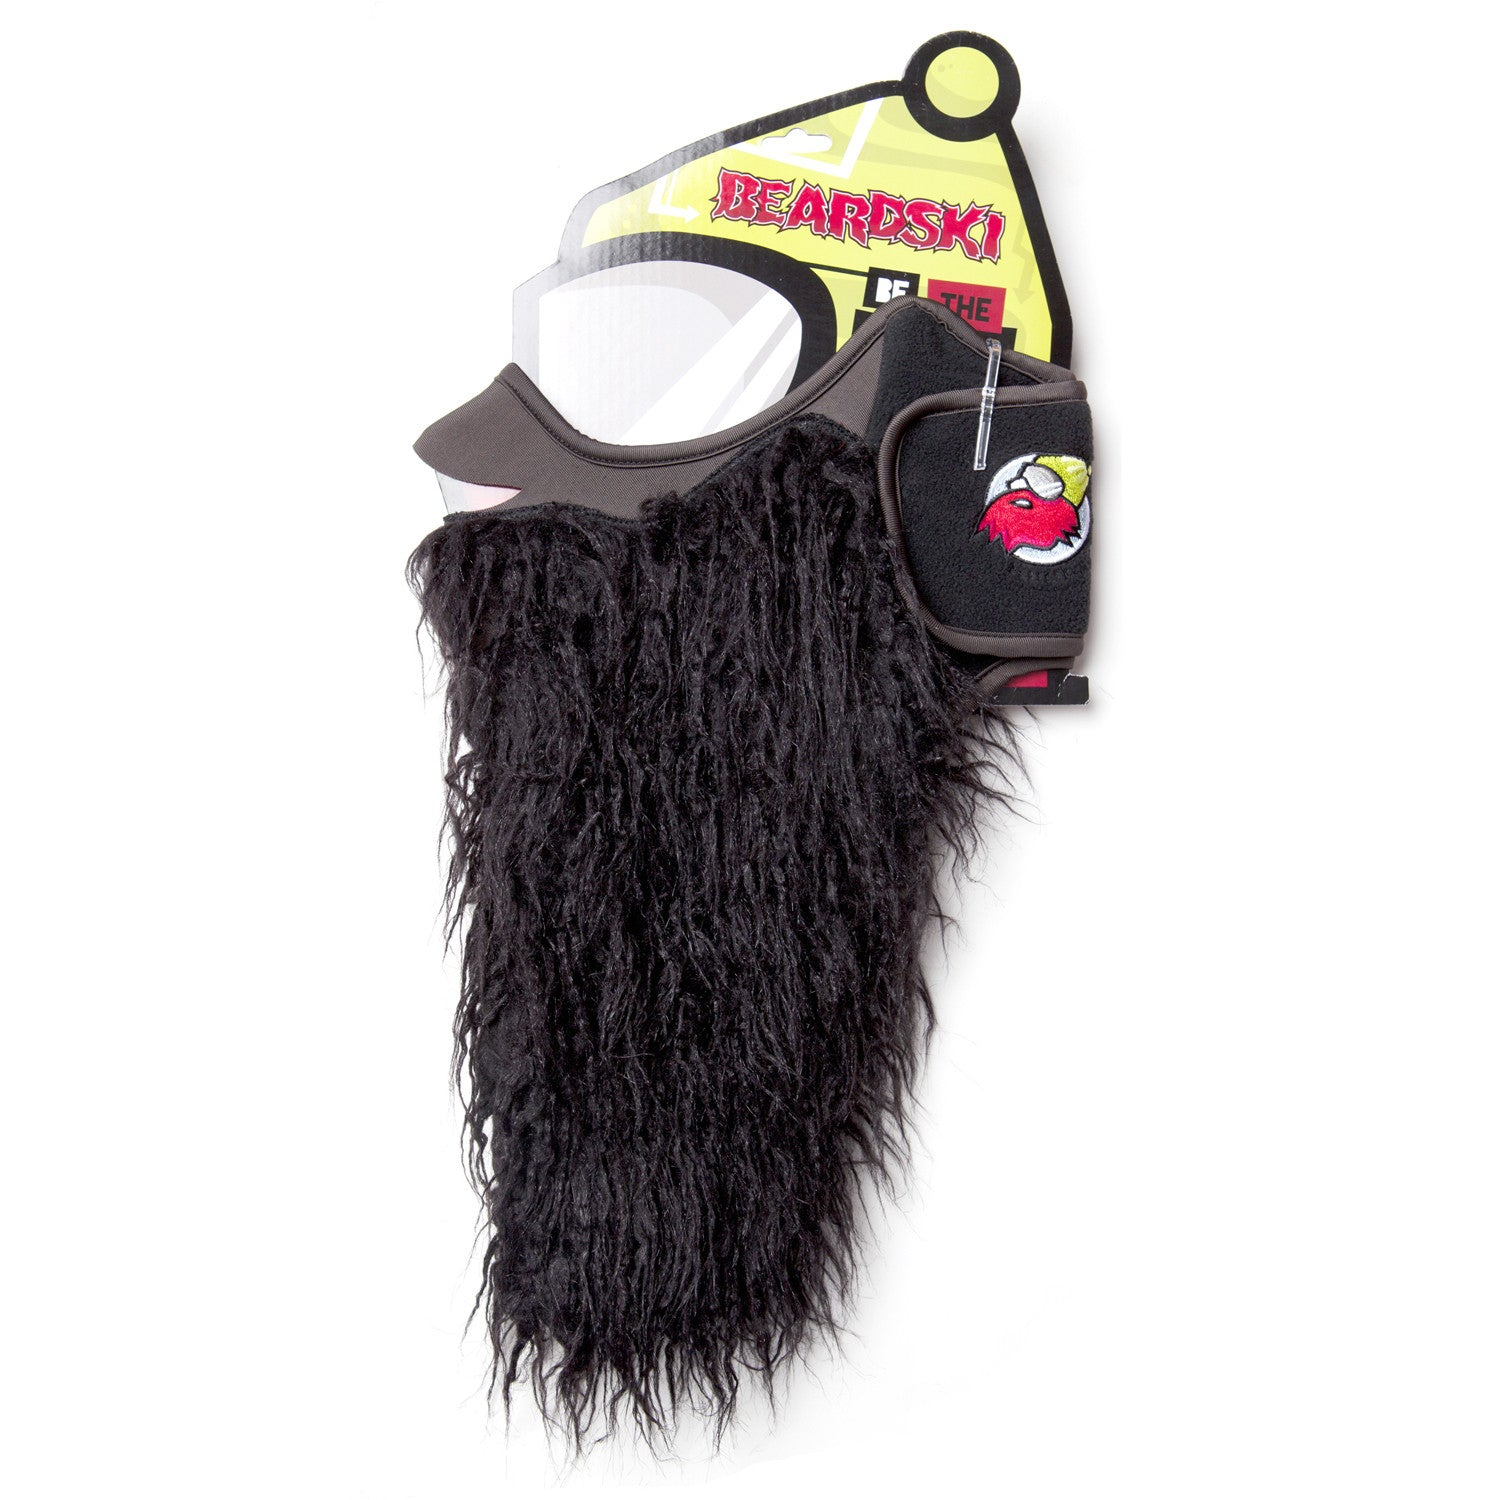 Beardski Pirate Skimask